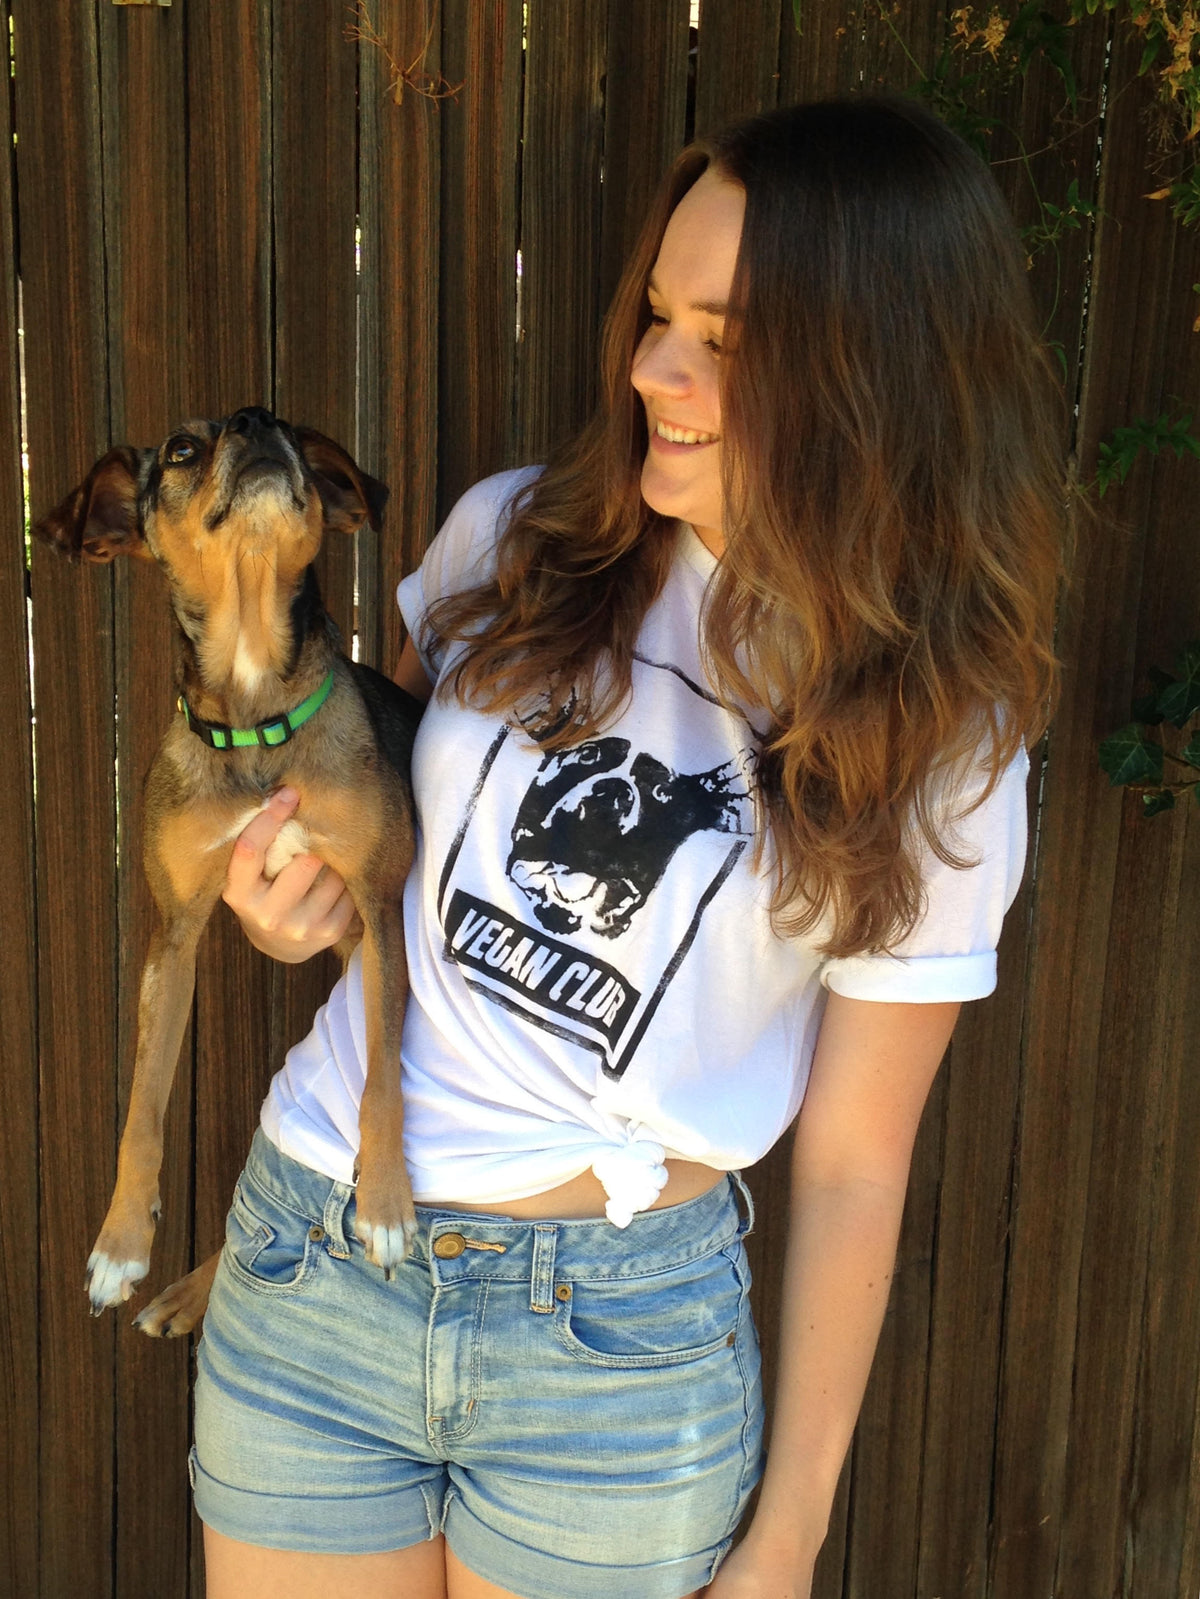 "Unisex T-shirt ""Vegan Club"" featuring VDog V-Dog Handmade by Le Fou - models @marianberry12 @cindypursuit"